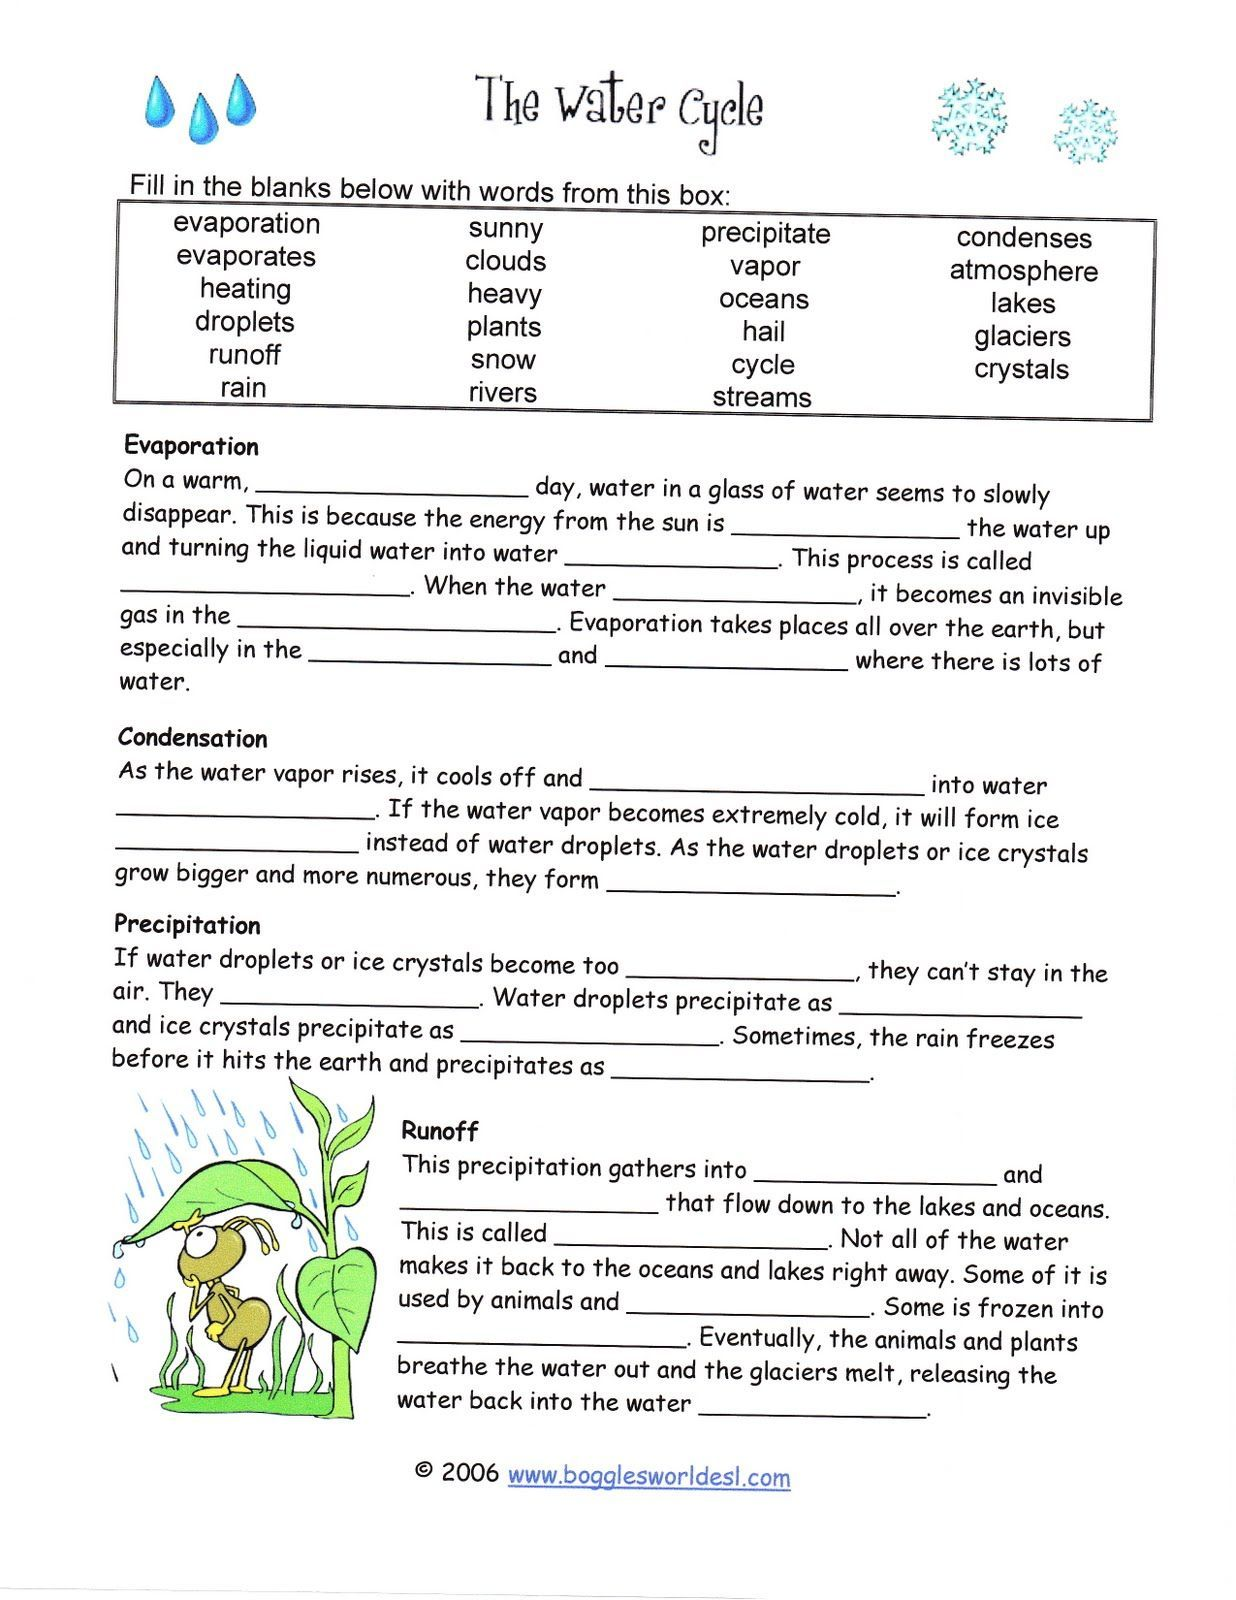 The Water Cycle Worksheet Answers Em